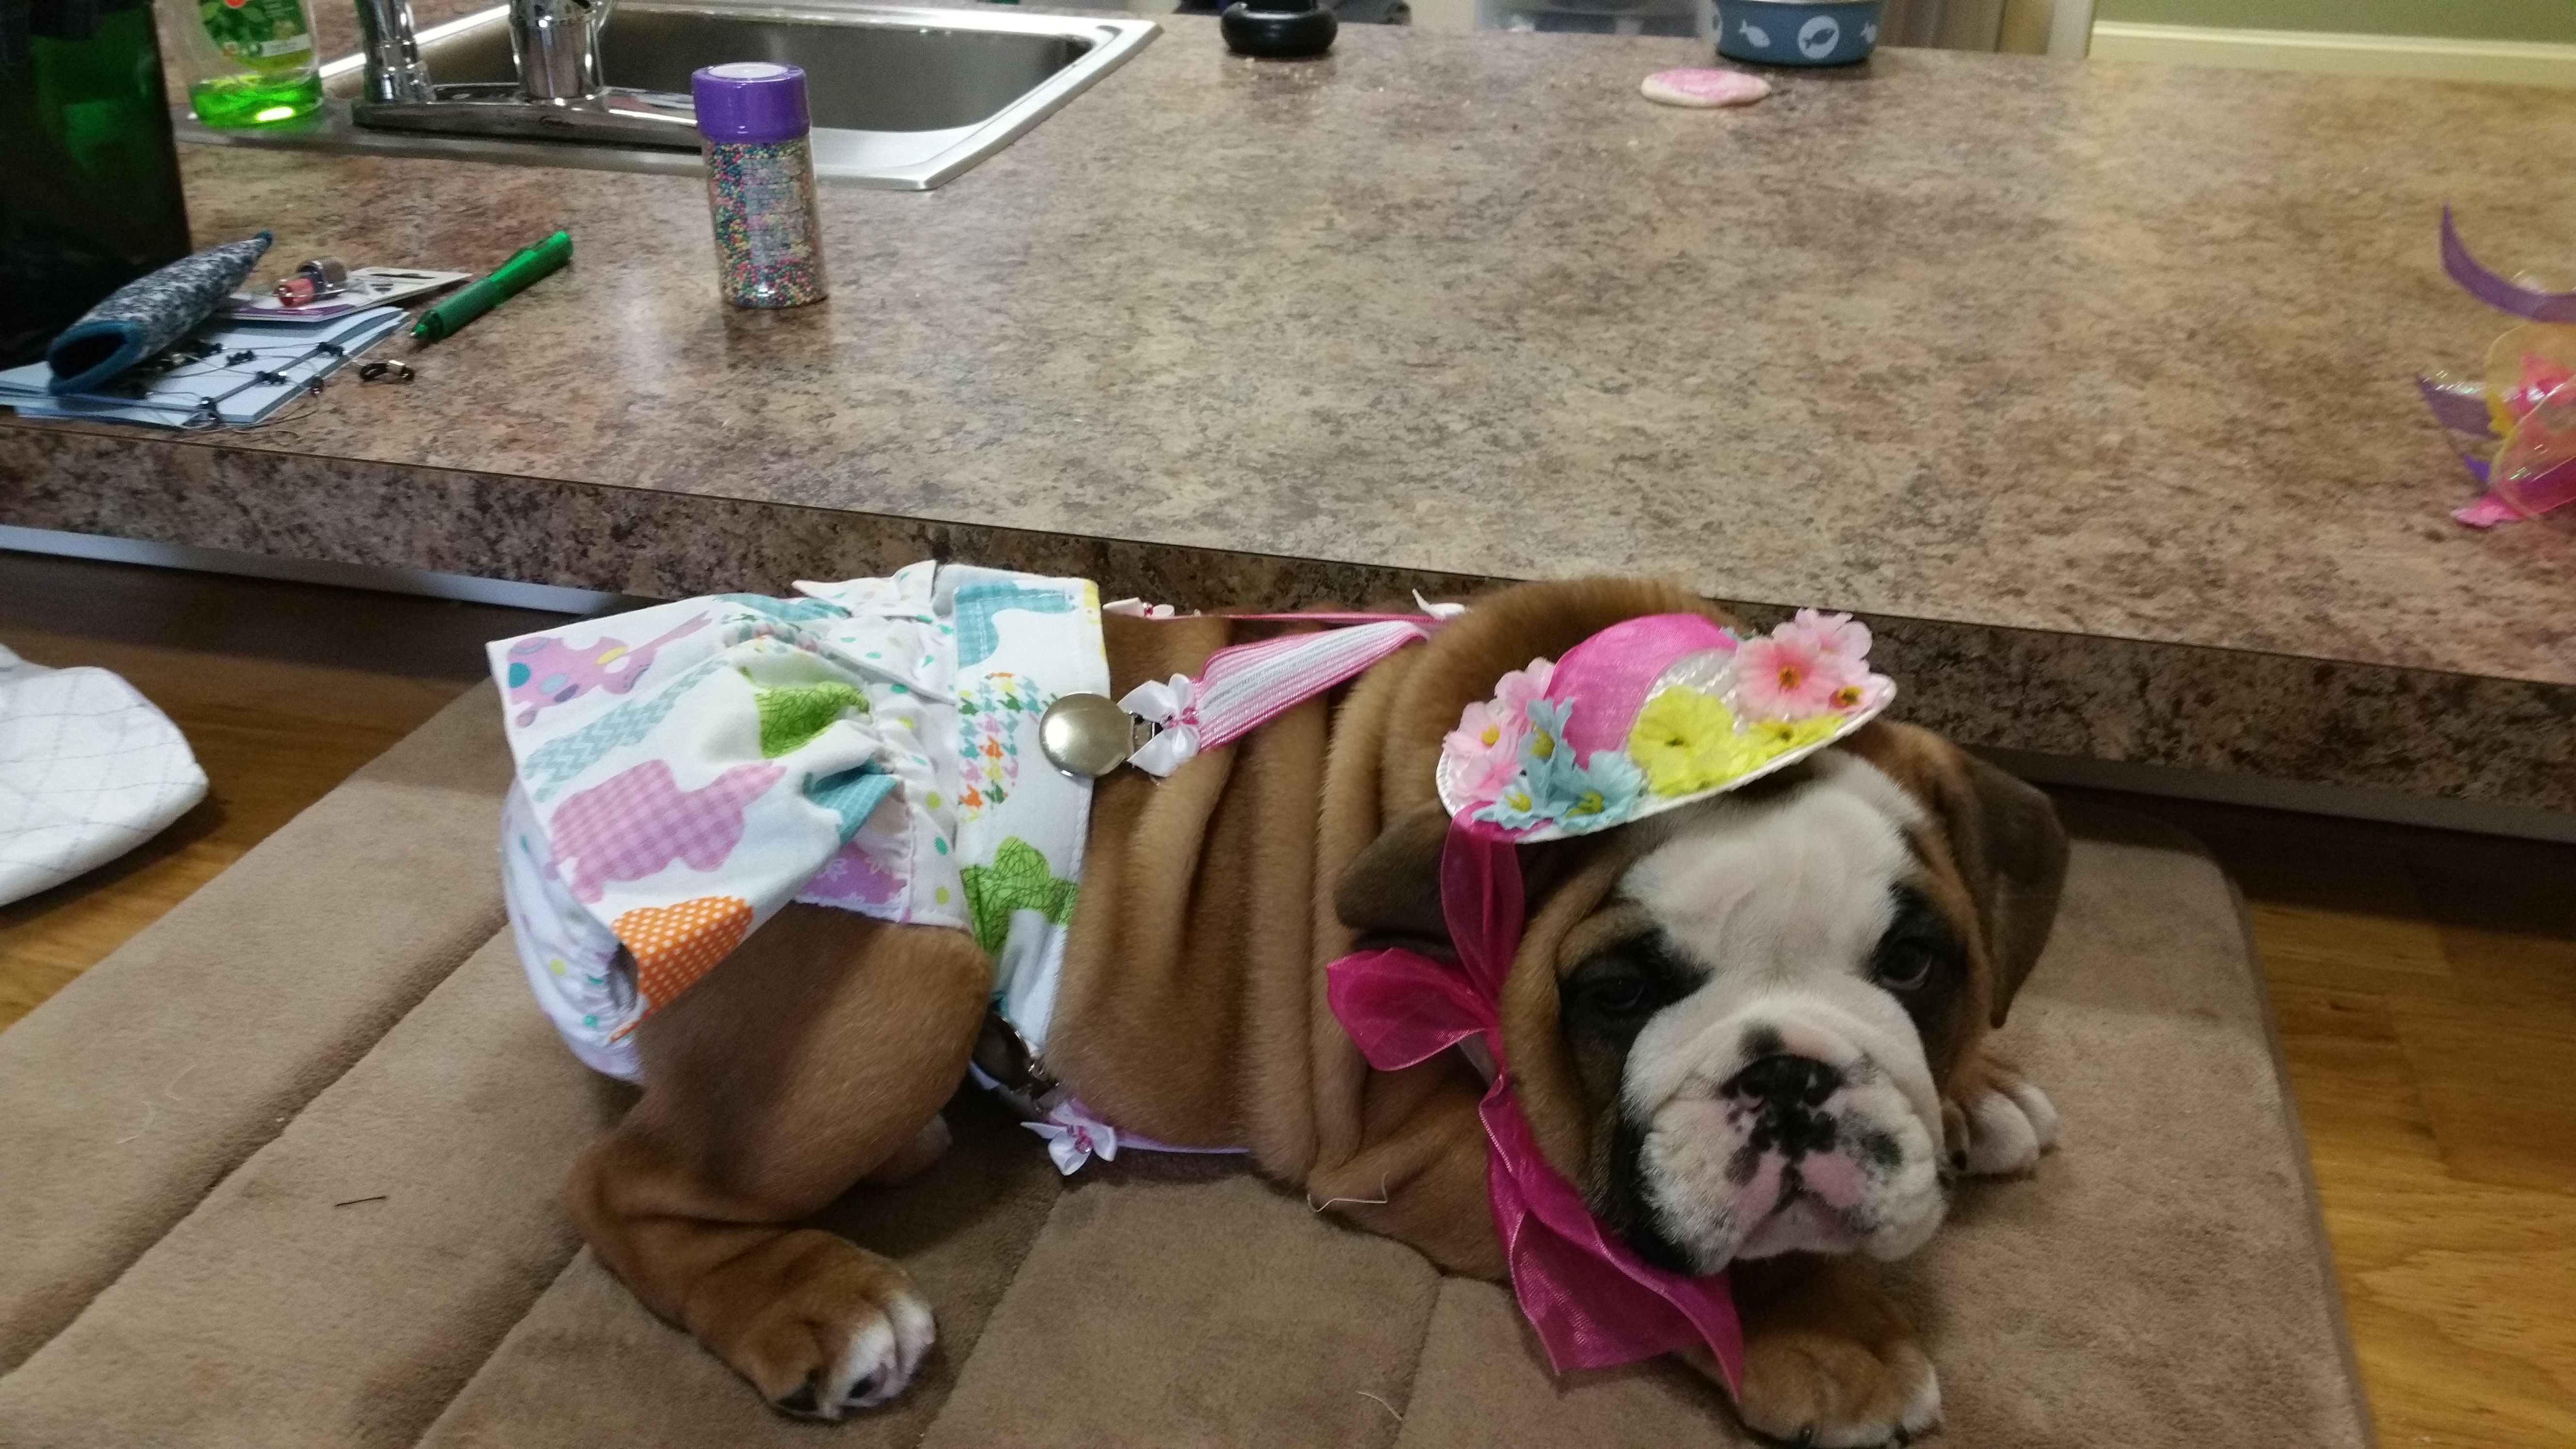 Cute Baby Bulldog Wearing A Diaper Skirt From Piddler On The Woof